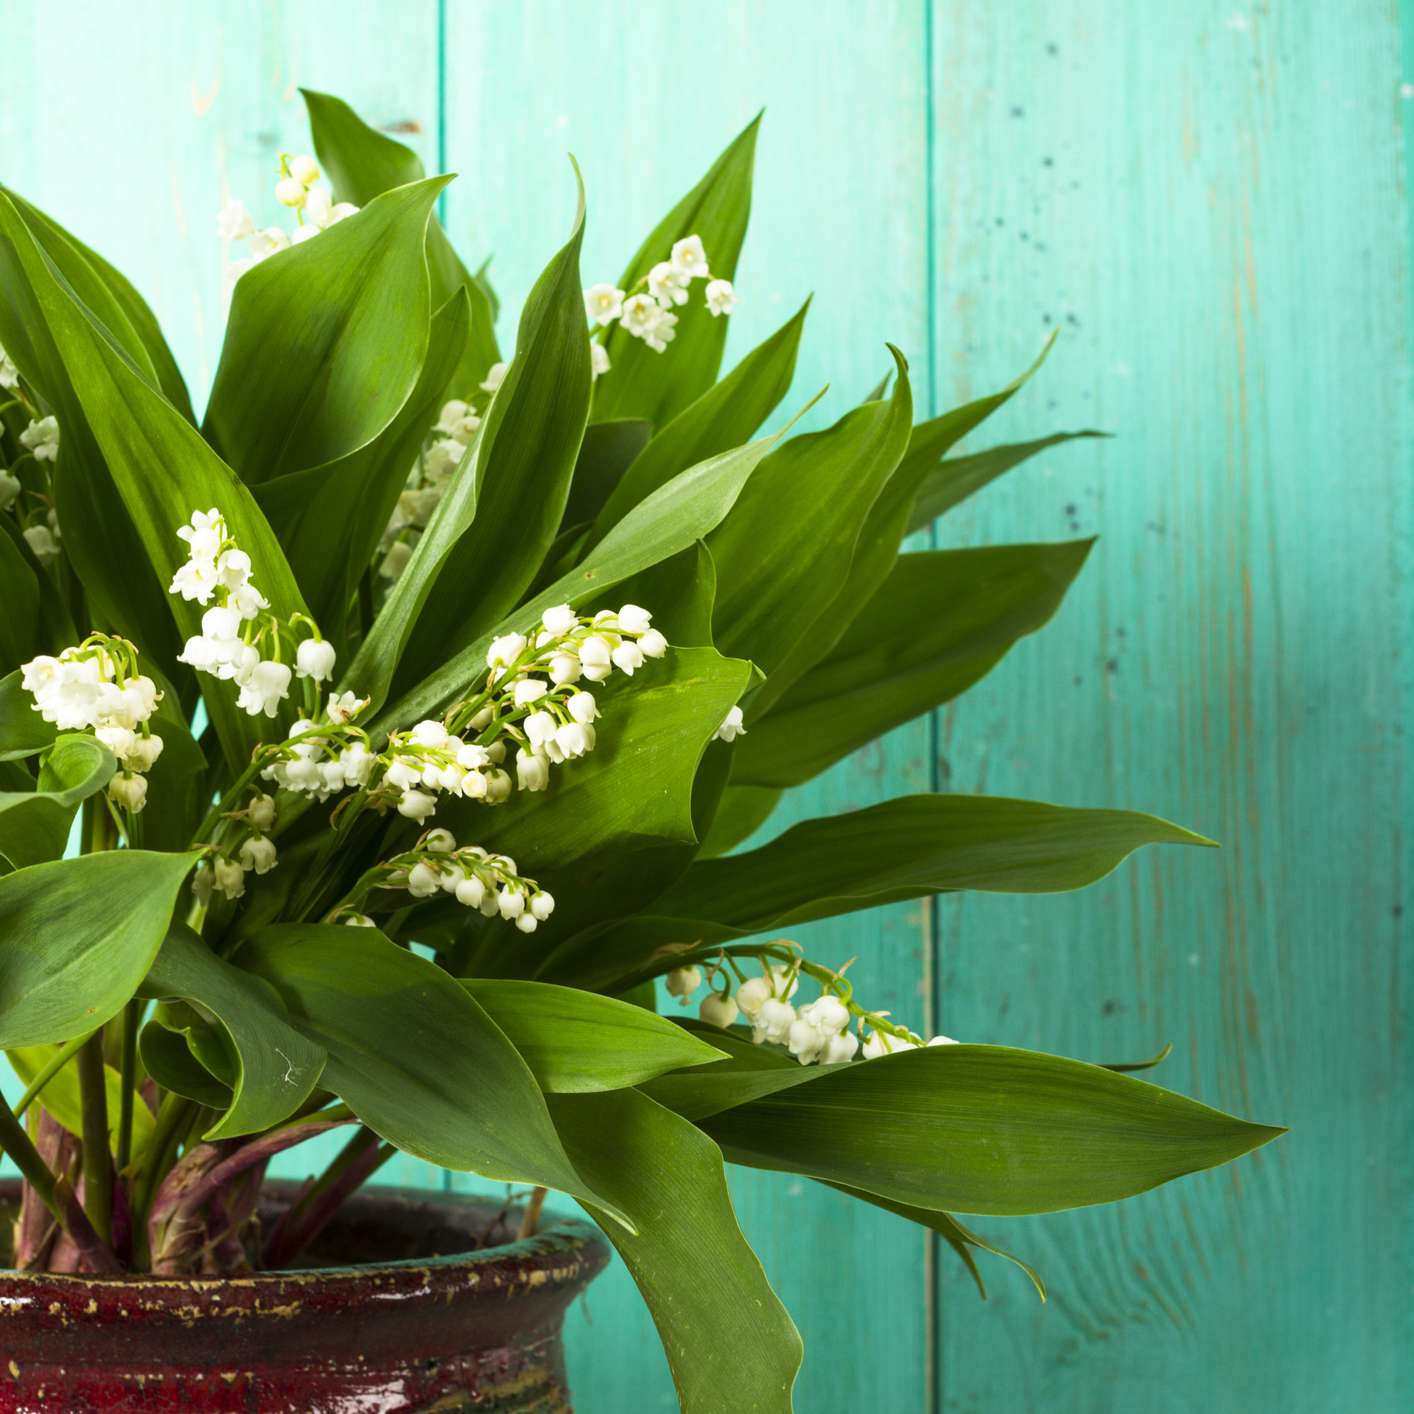 Potted Lily Of The Valley houseplant with white flowers On Aqua Wood Background